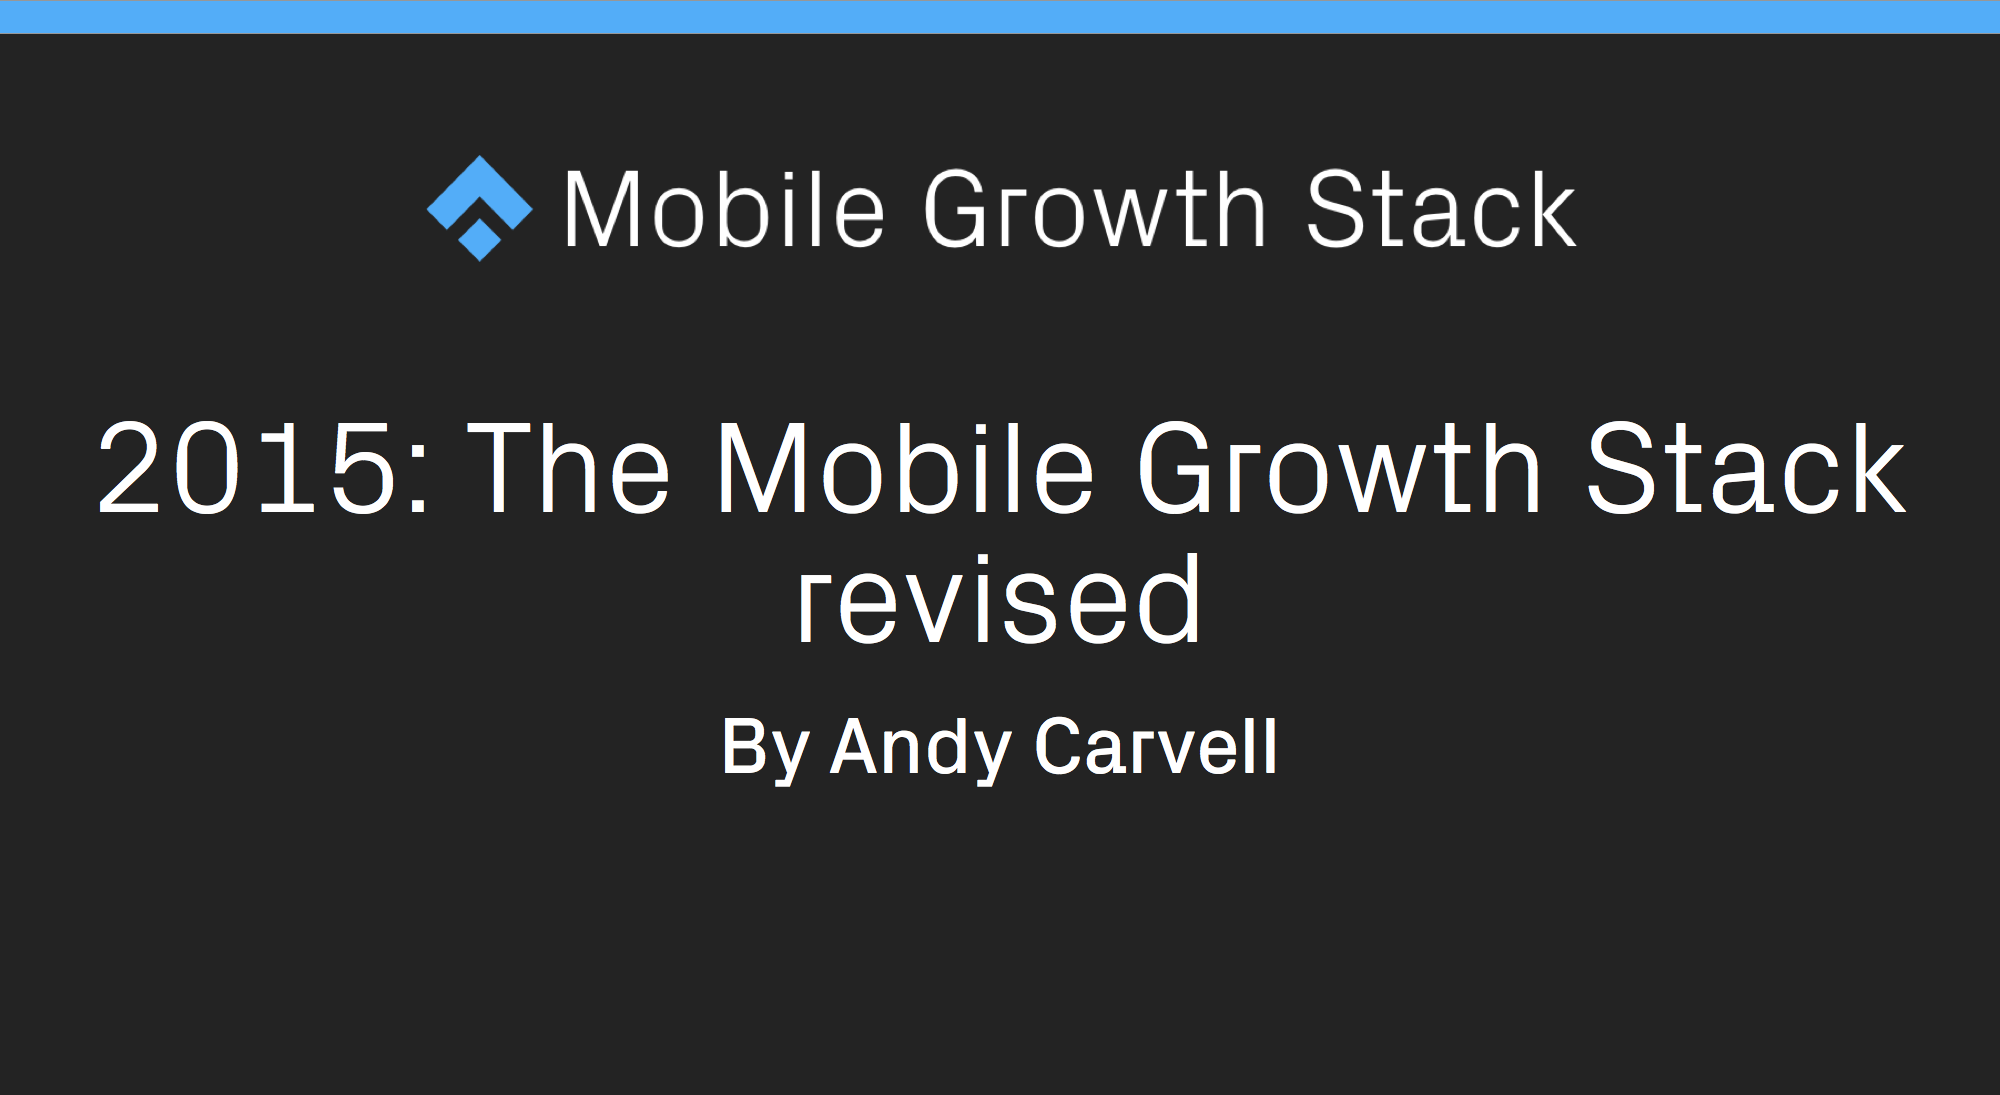 the mobile growth stack 2015